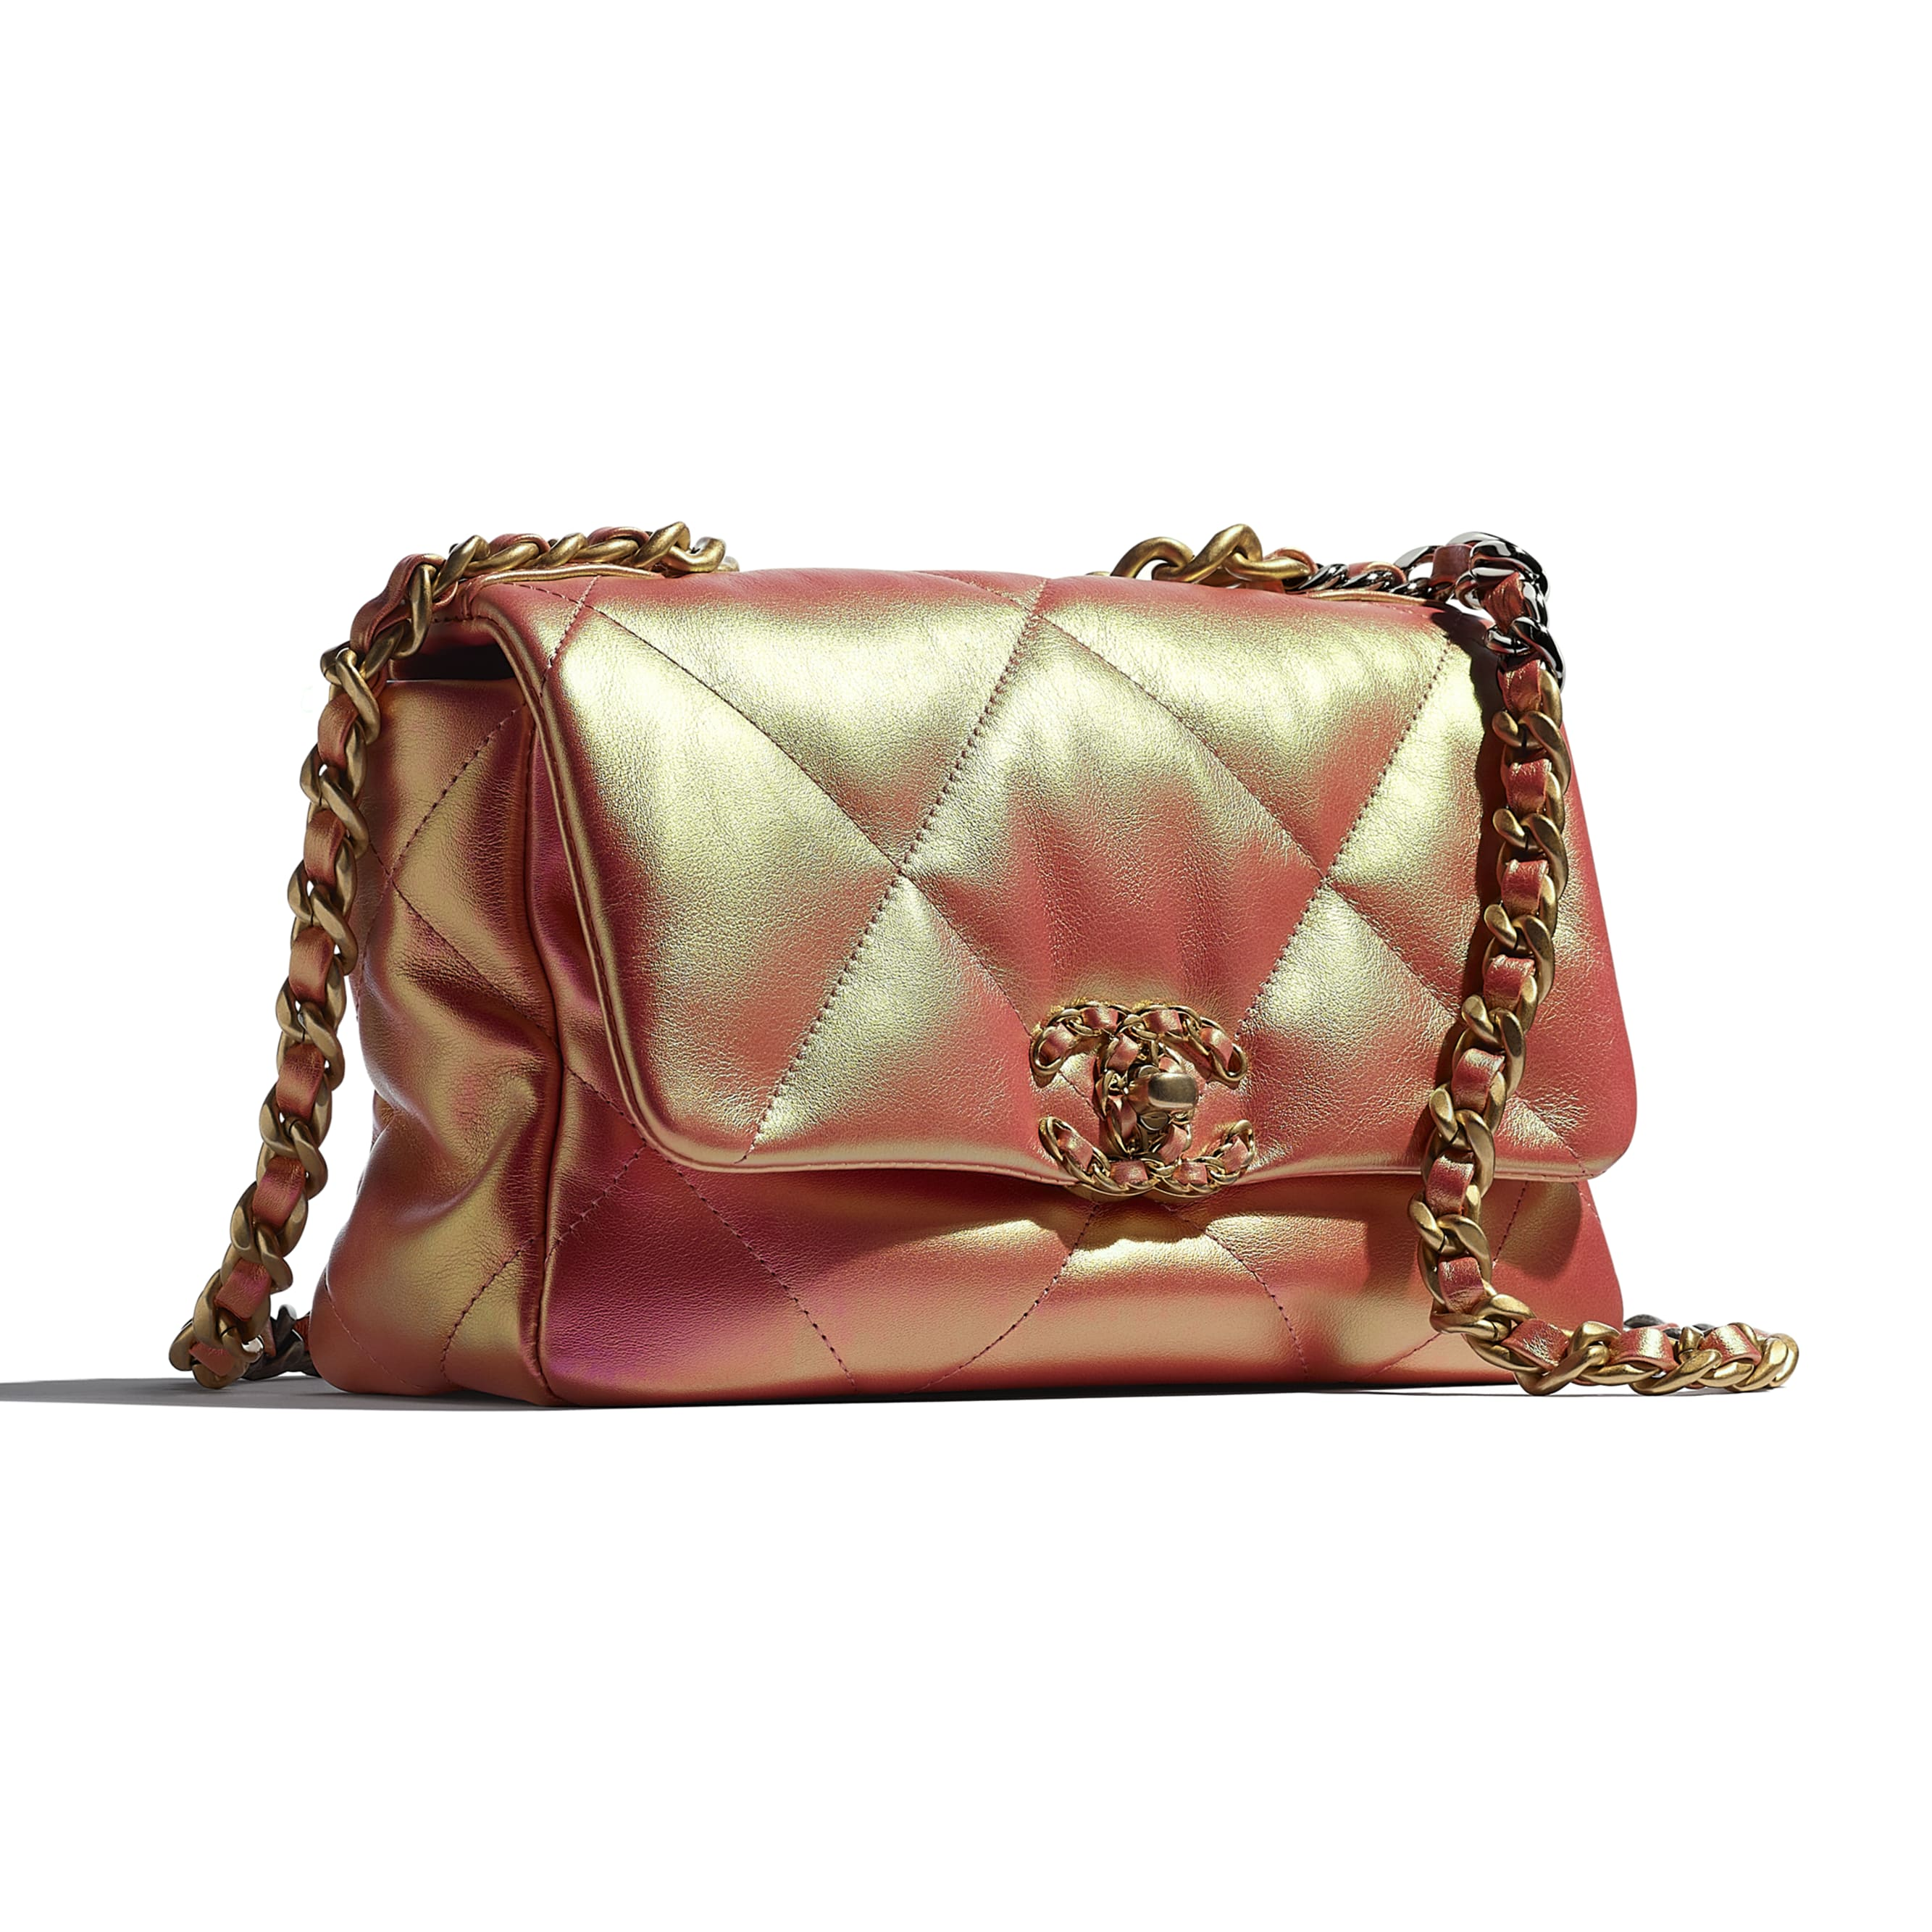 CHANEL 19 Flap Bag - Pink - Iridescent Calfskin, Gold-Tone, Silver-Tone & Ruthenium-Finish Metal - CHANEL - Extra view - see standard sized version